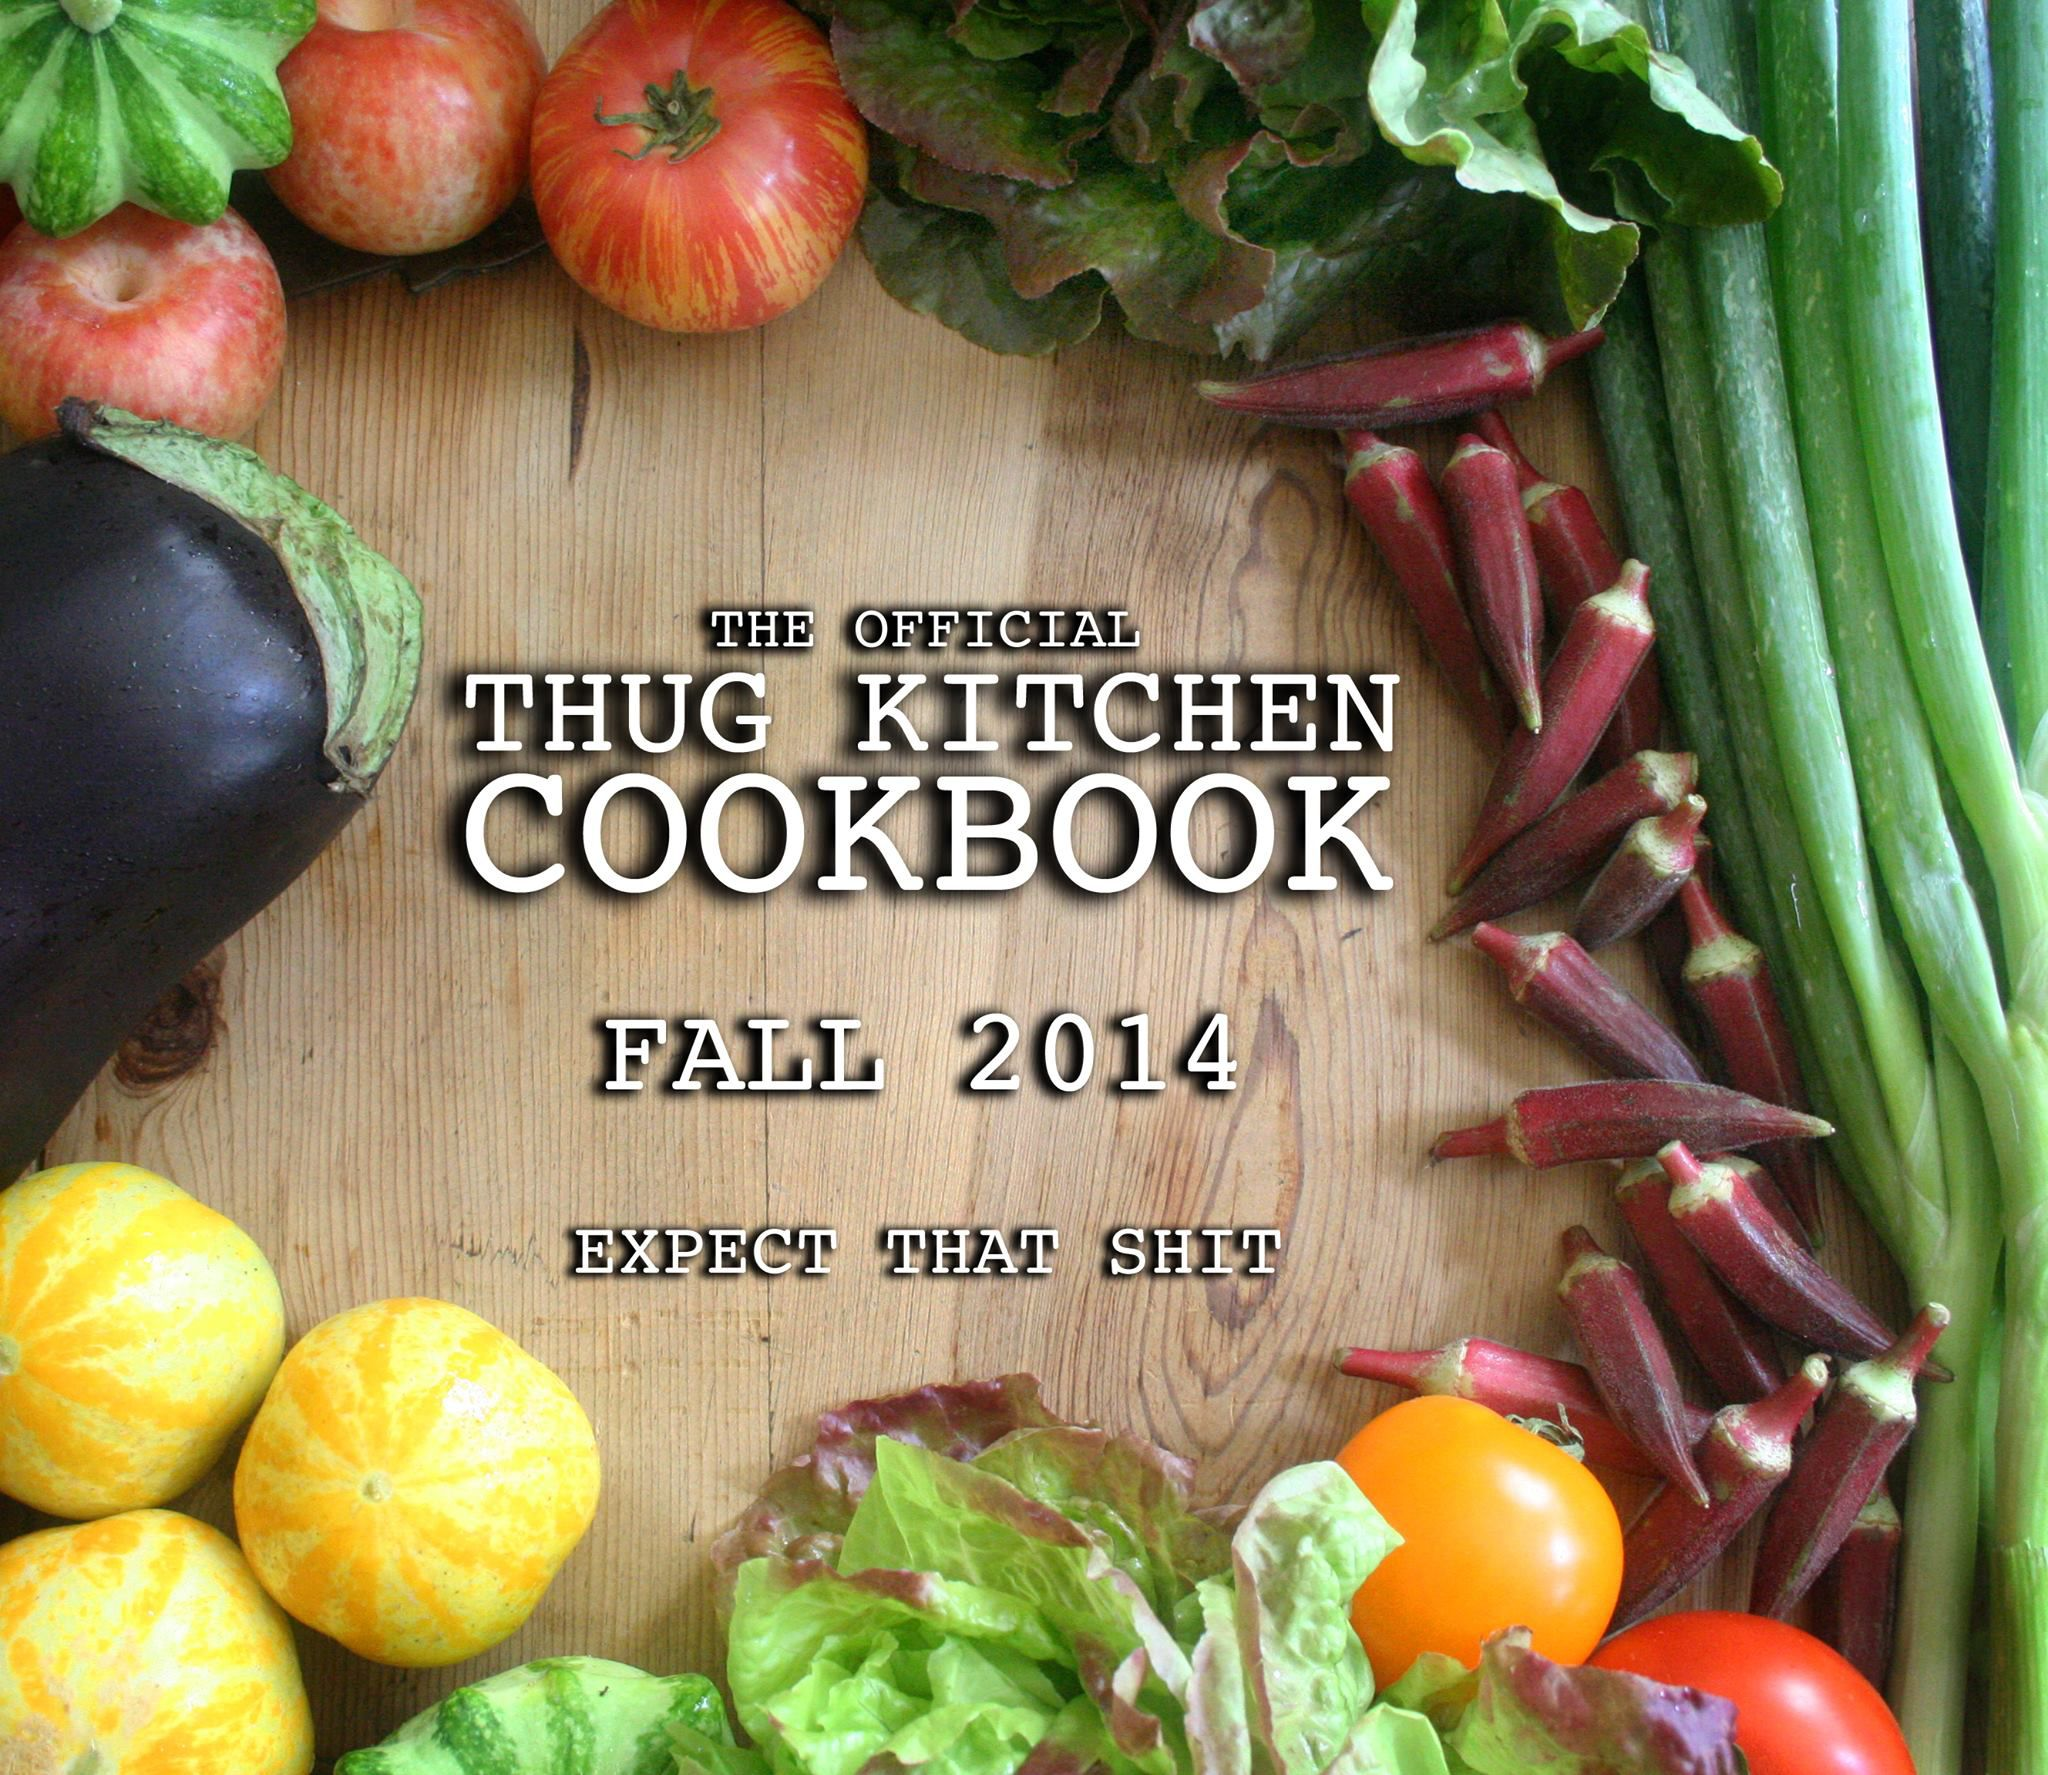 Thug Kitchen Cookbook -- debuting Fall 2014 | Thug kitchen ...